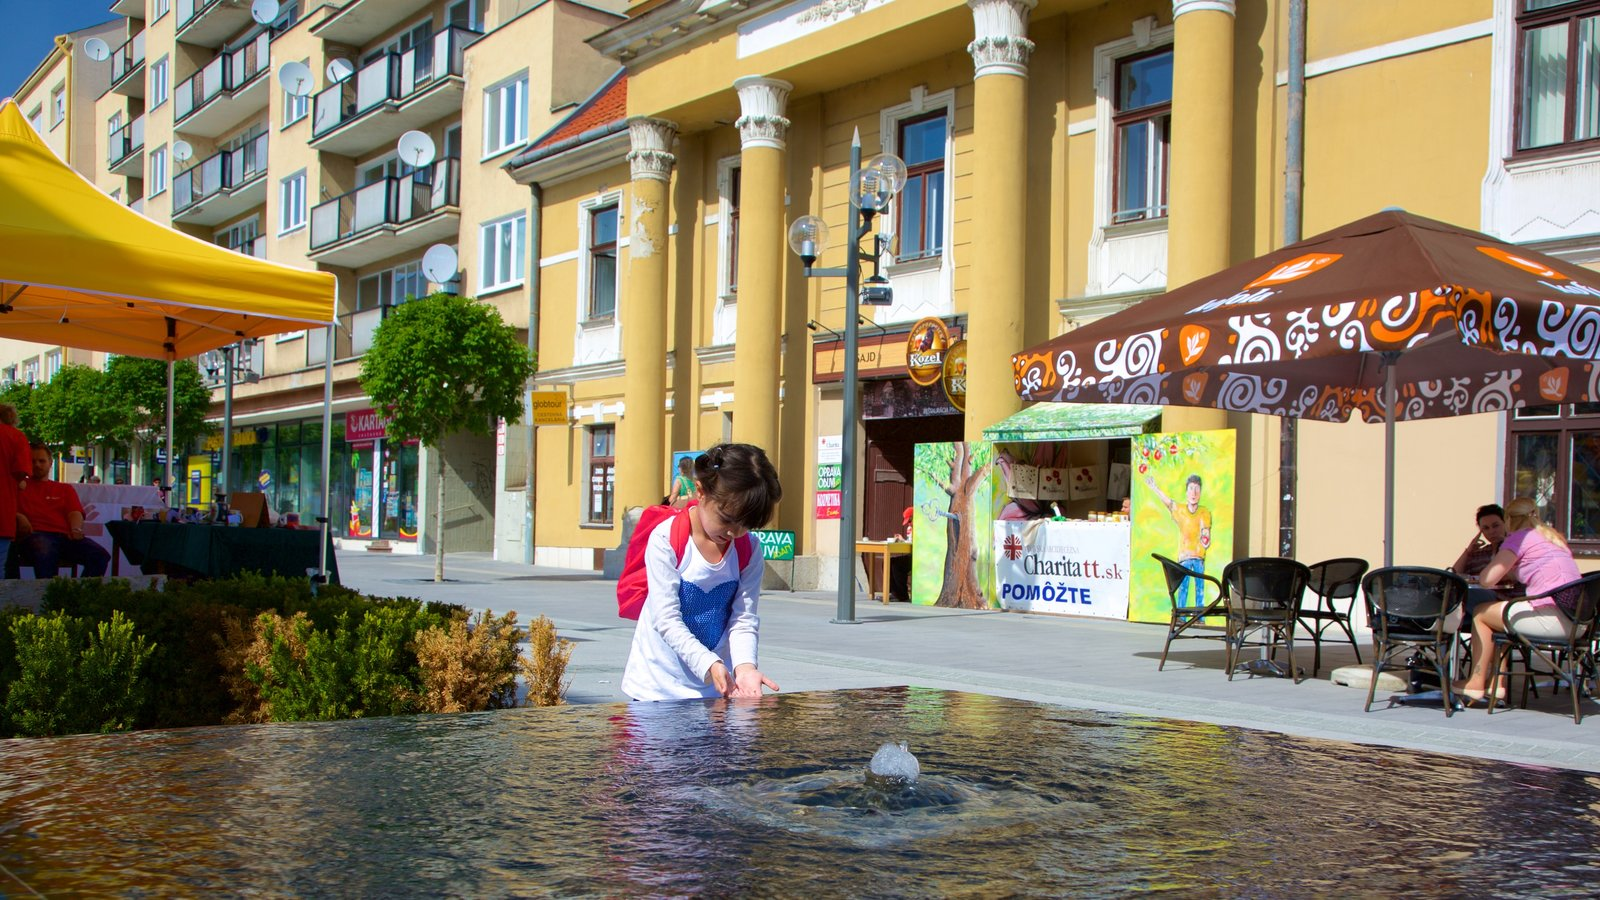 Trnava featuring a fountain as well as an individual child